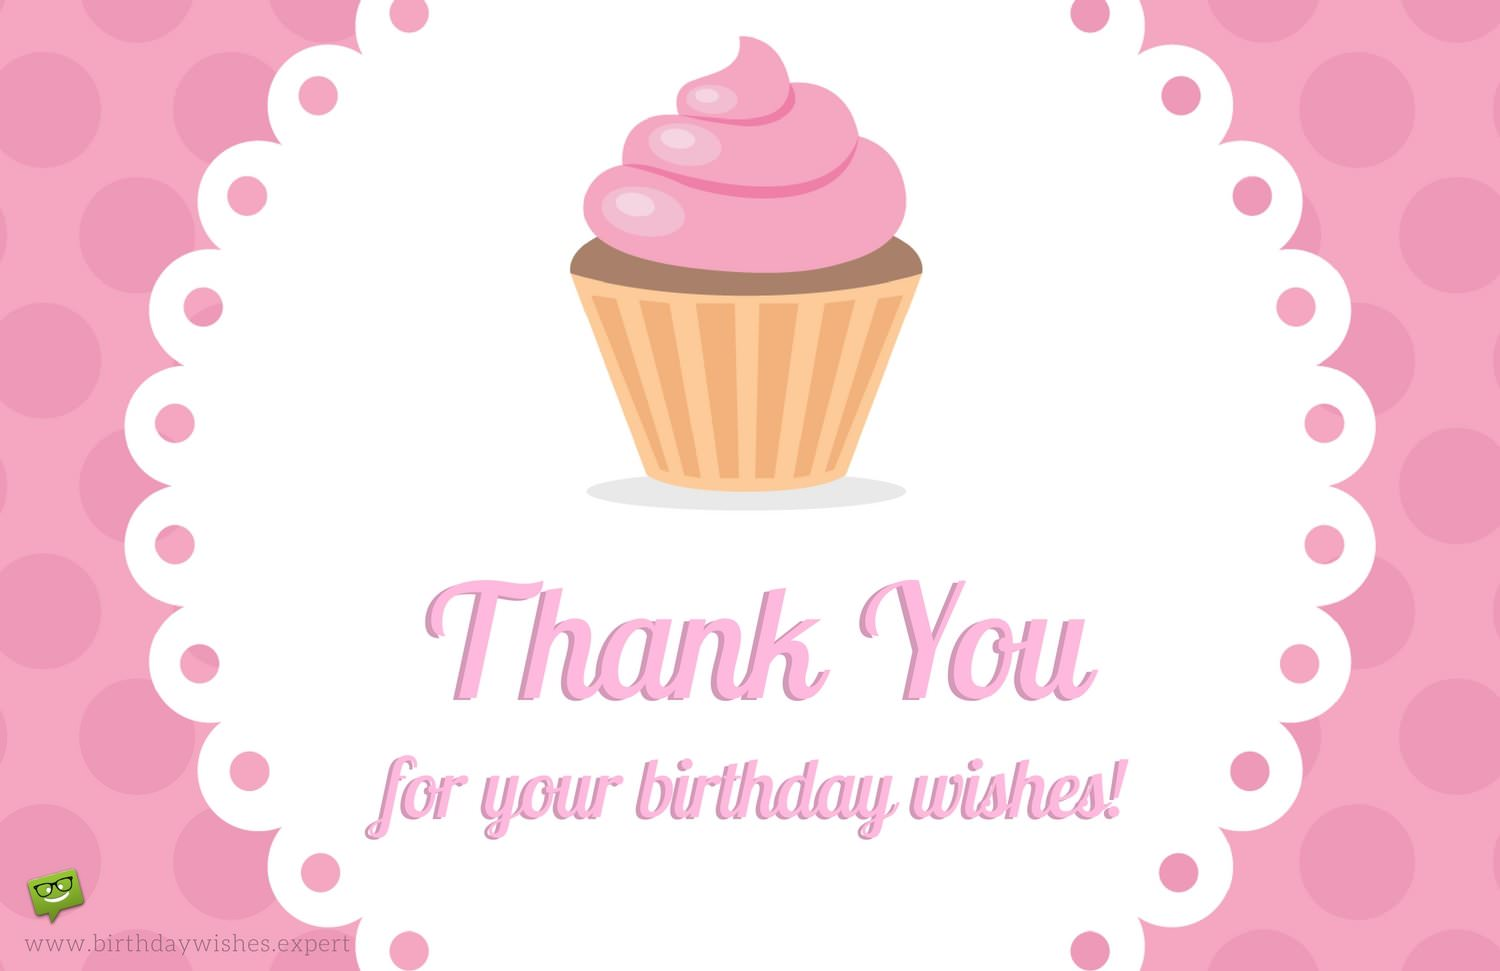 Thank you for your birthday wishes for being there thank you for your birthday wishes m4hsunfo